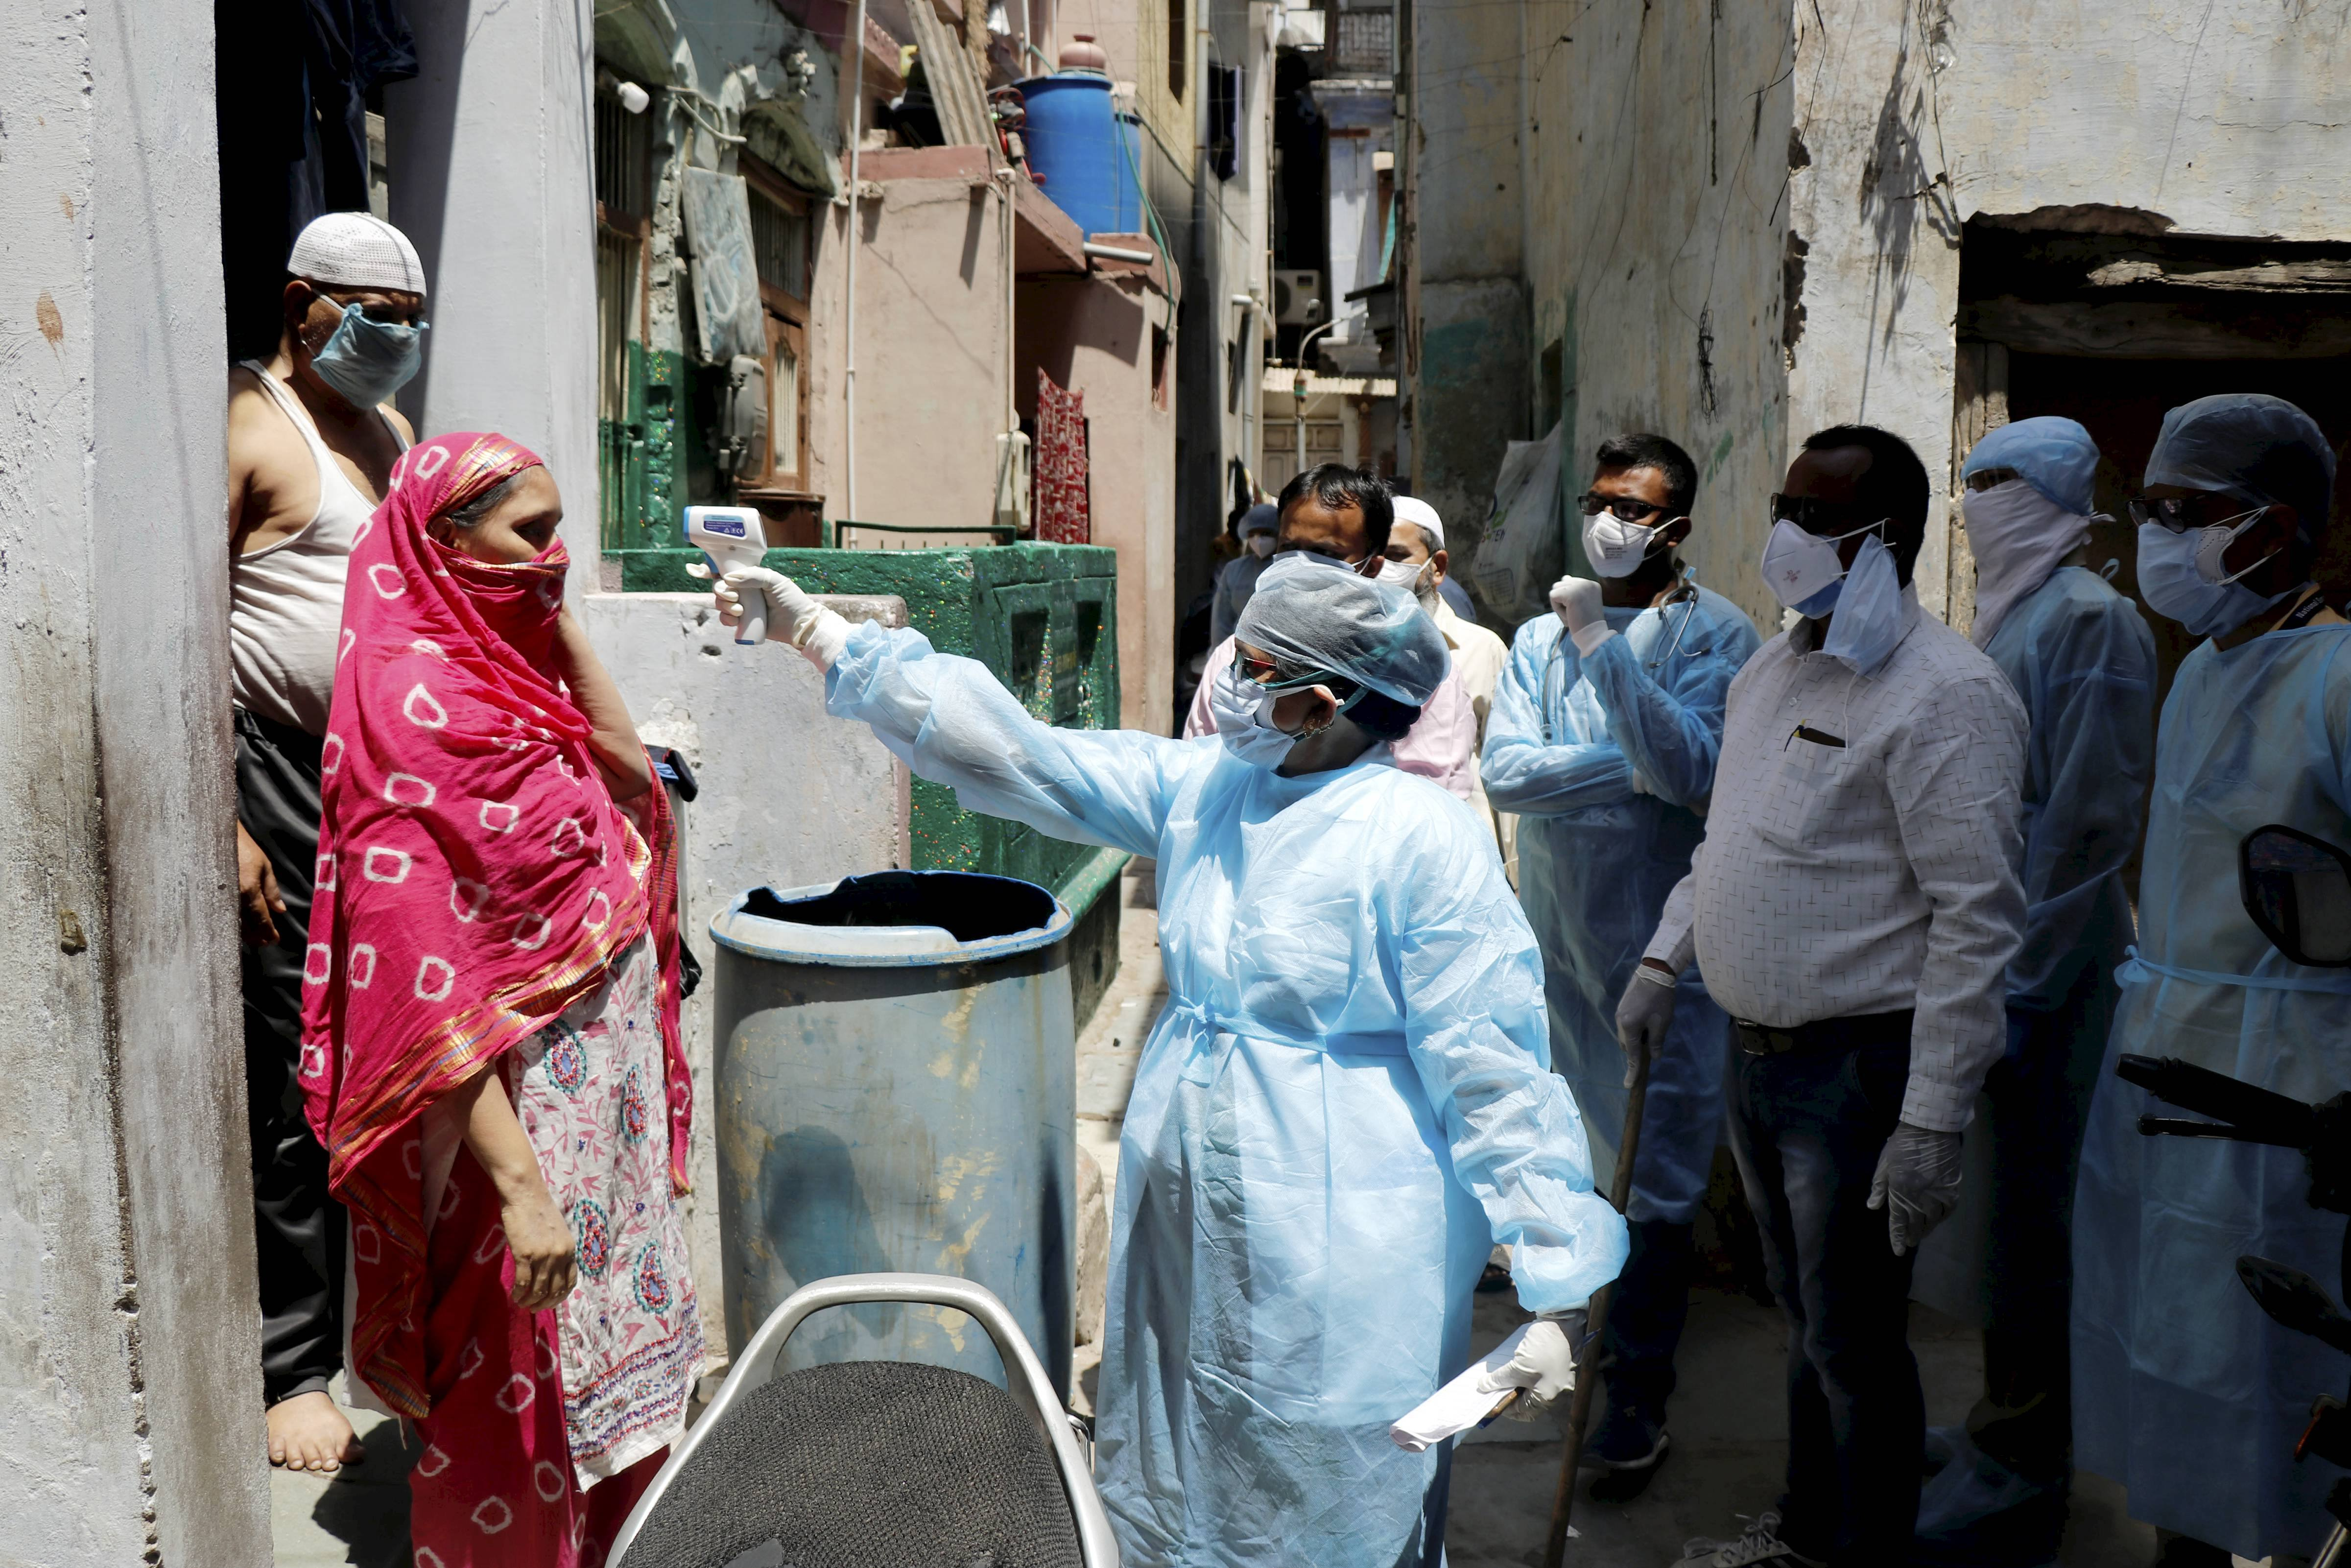 A medical team conducts door-to-door survey to screen people for Covid-19 symptoms, during the nationwide lockdown imposed in wake of the coronavirus outbreak, in Ahmedabad, Thursday, April 23, 2020.